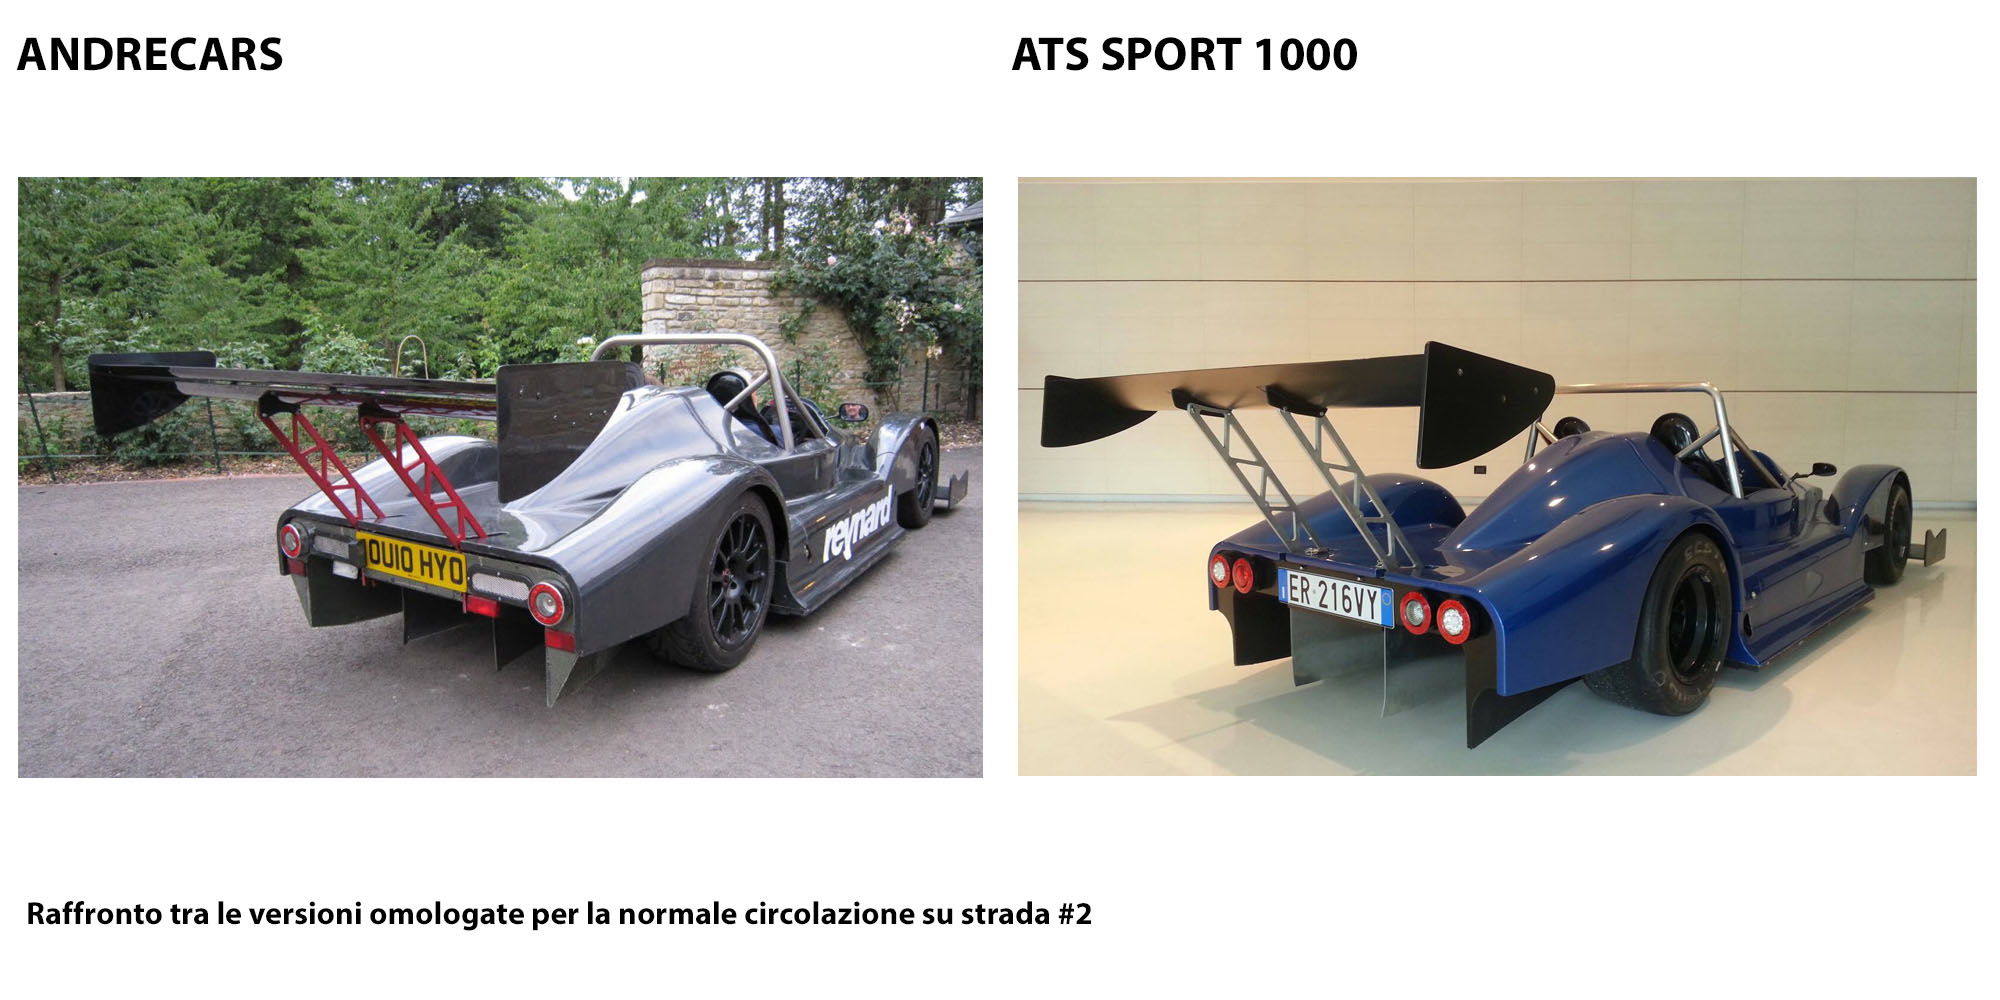 raffronto andrecars ats sport 1000 targate retro track fever. Black Bedroom Furniture Sets. Home Design Ideas